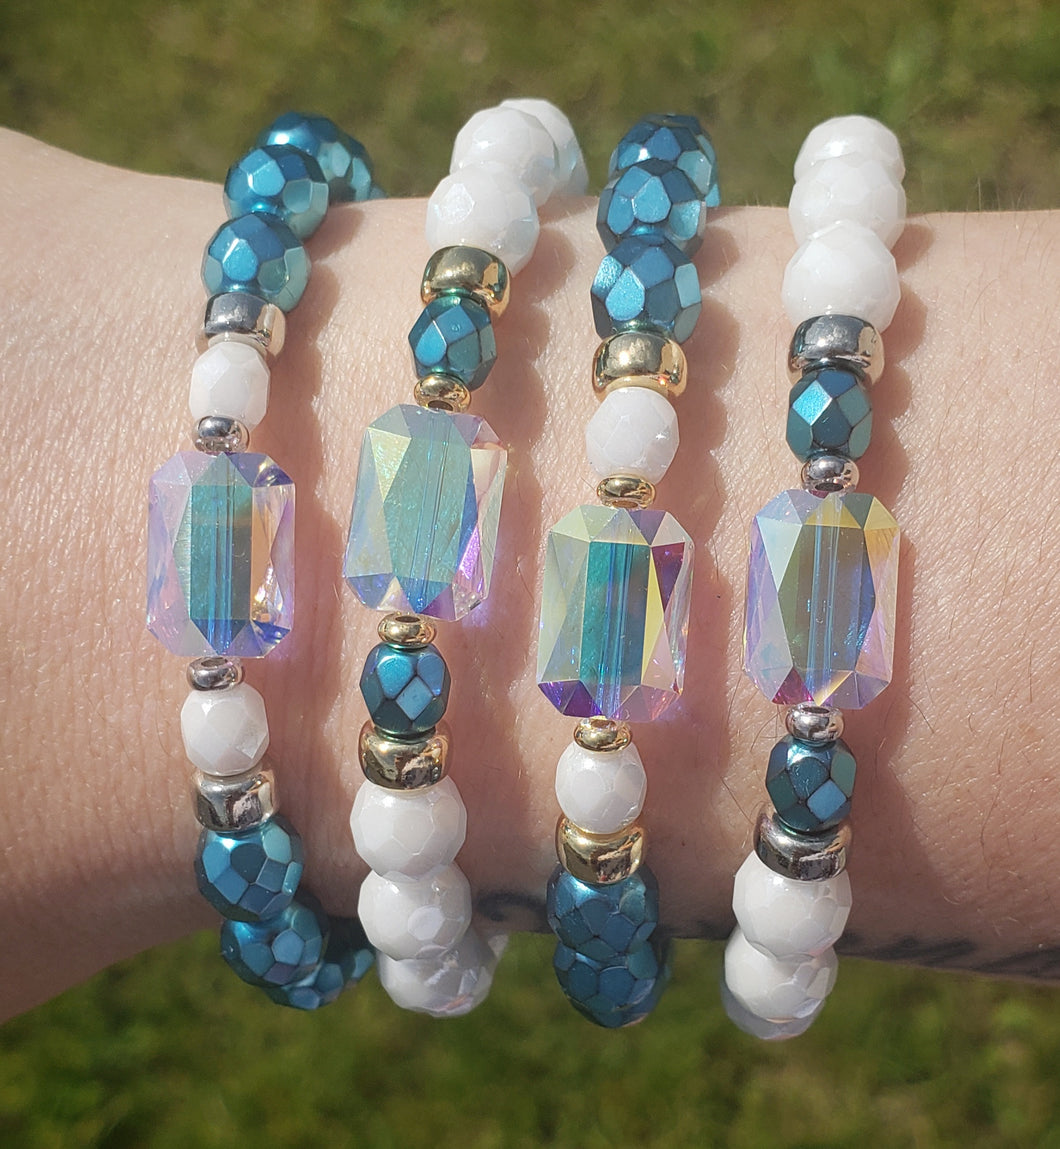 Stash & Marie's Jewelry Exclusive Teal & White Crystal AB Swarovski Bracelets